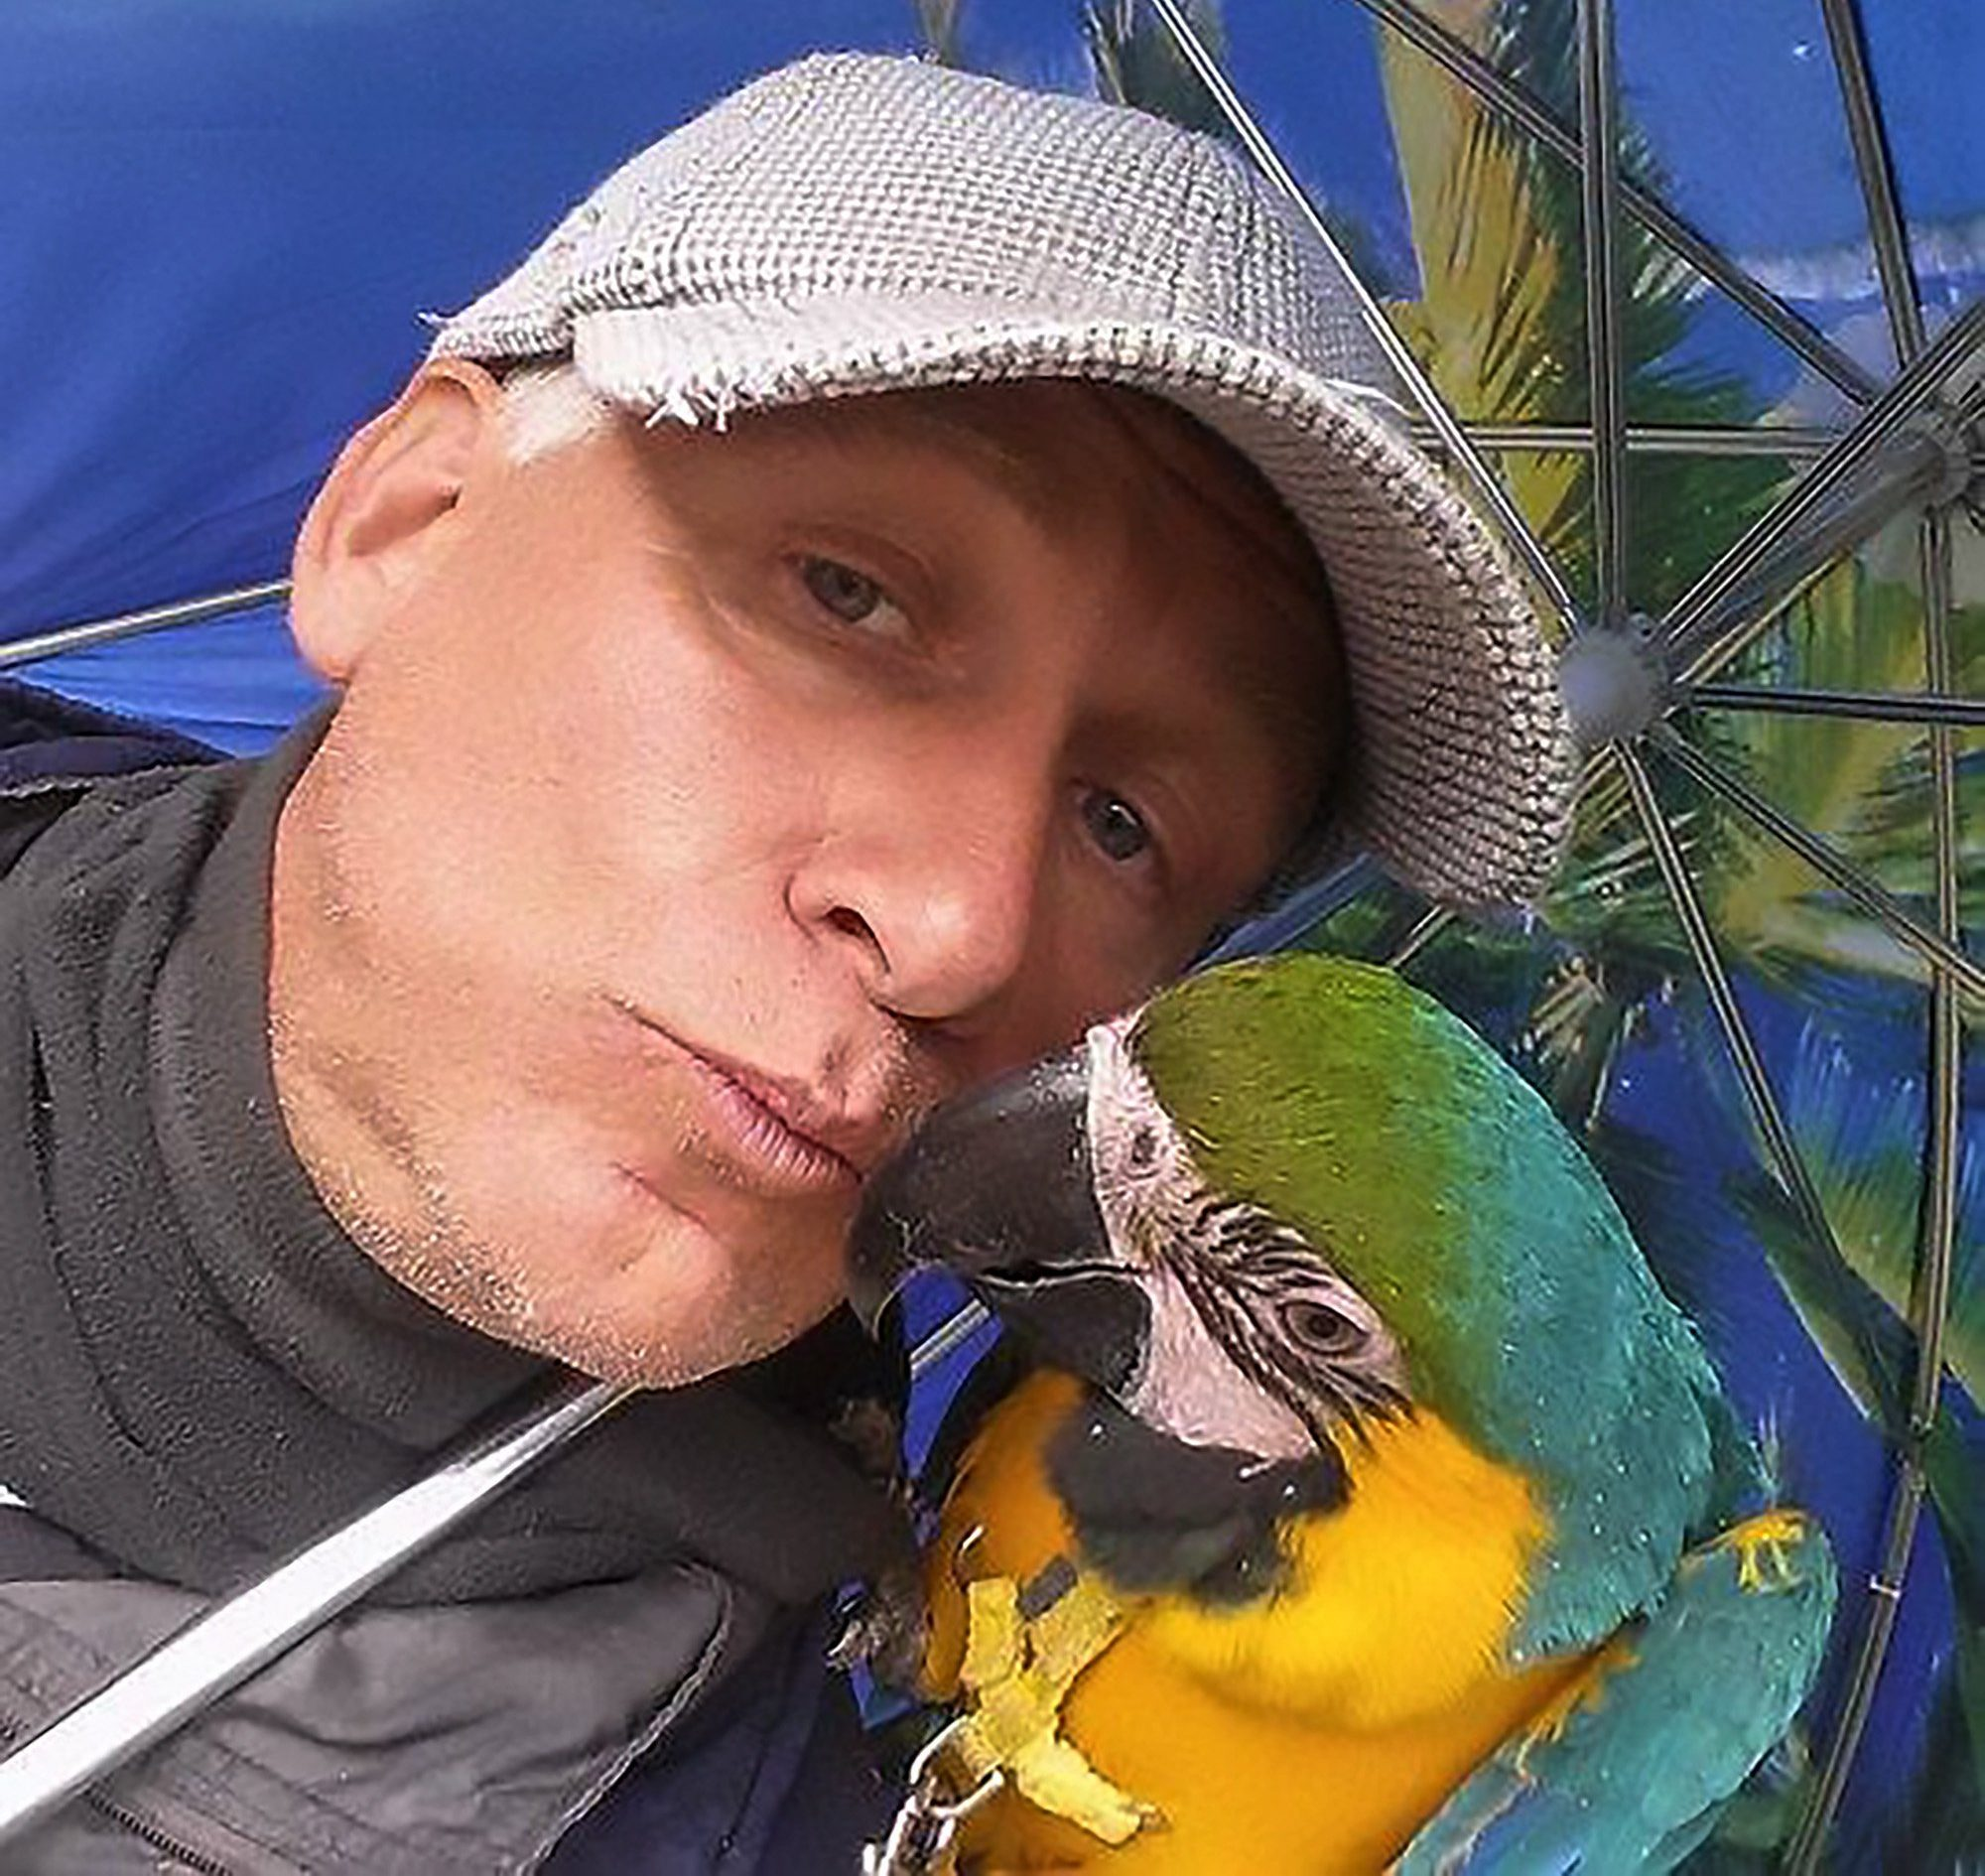 """Pic Shows: Parrot owner Joseph Verdyck; A hunter has admitted blasting a rare parrot out of the sky while it was being exercised by its owner because it was not illegal to shoot exotic birds. Parrot owner Joseph Verdyck from the Belgian town of Westmalle not only saw his pet shot, but then watched in vain as it was partially eaten by hunting dogs. He had taken his pet parrots Rambo and Mera for a fly in the outdoors. He had raised them by himself after hatching them from eggs, and even taught them to fly. He got the permission of a farmer to let the ara macaws, worth several thousand pounds each, fly over one of his fields. Verdyck said: """"Rambo became a fully fledged free flight bird after three years. According to experts he was one of the best trained parrots in Belgium. """"He is often allowed together with Mero to fly free for the day, in the summer a bit longer than in winter."""" Verdyck was however unaware that hunters were in the area, and within minutes one of them took aim at Rambo and blasted him from the sky. He then saw to his horror how the hunting dogs owned by the men immediately ran towards the parrot and savaged the poor bird in front of his eyes. An image shows the remains of the dead parrot on the ground with its red harness clearly visible. A shocked Verdyck immediately confronted the hunter who shot his beloved pet animal. Verdyck said: """"He apologised because he did not know it was my bird and said that he would have never done it if he had realised the owner was nearby, and that it was not an escaped animal."""" The hunter said that he saw the bird flying over in the sky and decided to shoot it as hunting exotic bird species is allowed in Belgium. He promised Verdyck he would contact his insurance company to see if the pet owner can be reimbursed. Verdyck however filed a criminal complaint against the hunter. He said: """"The man just shot for fun at Rambo. A hunter hunts for game: rabbits, pigeons and pheasant. Not a brightly-coloured parro"""